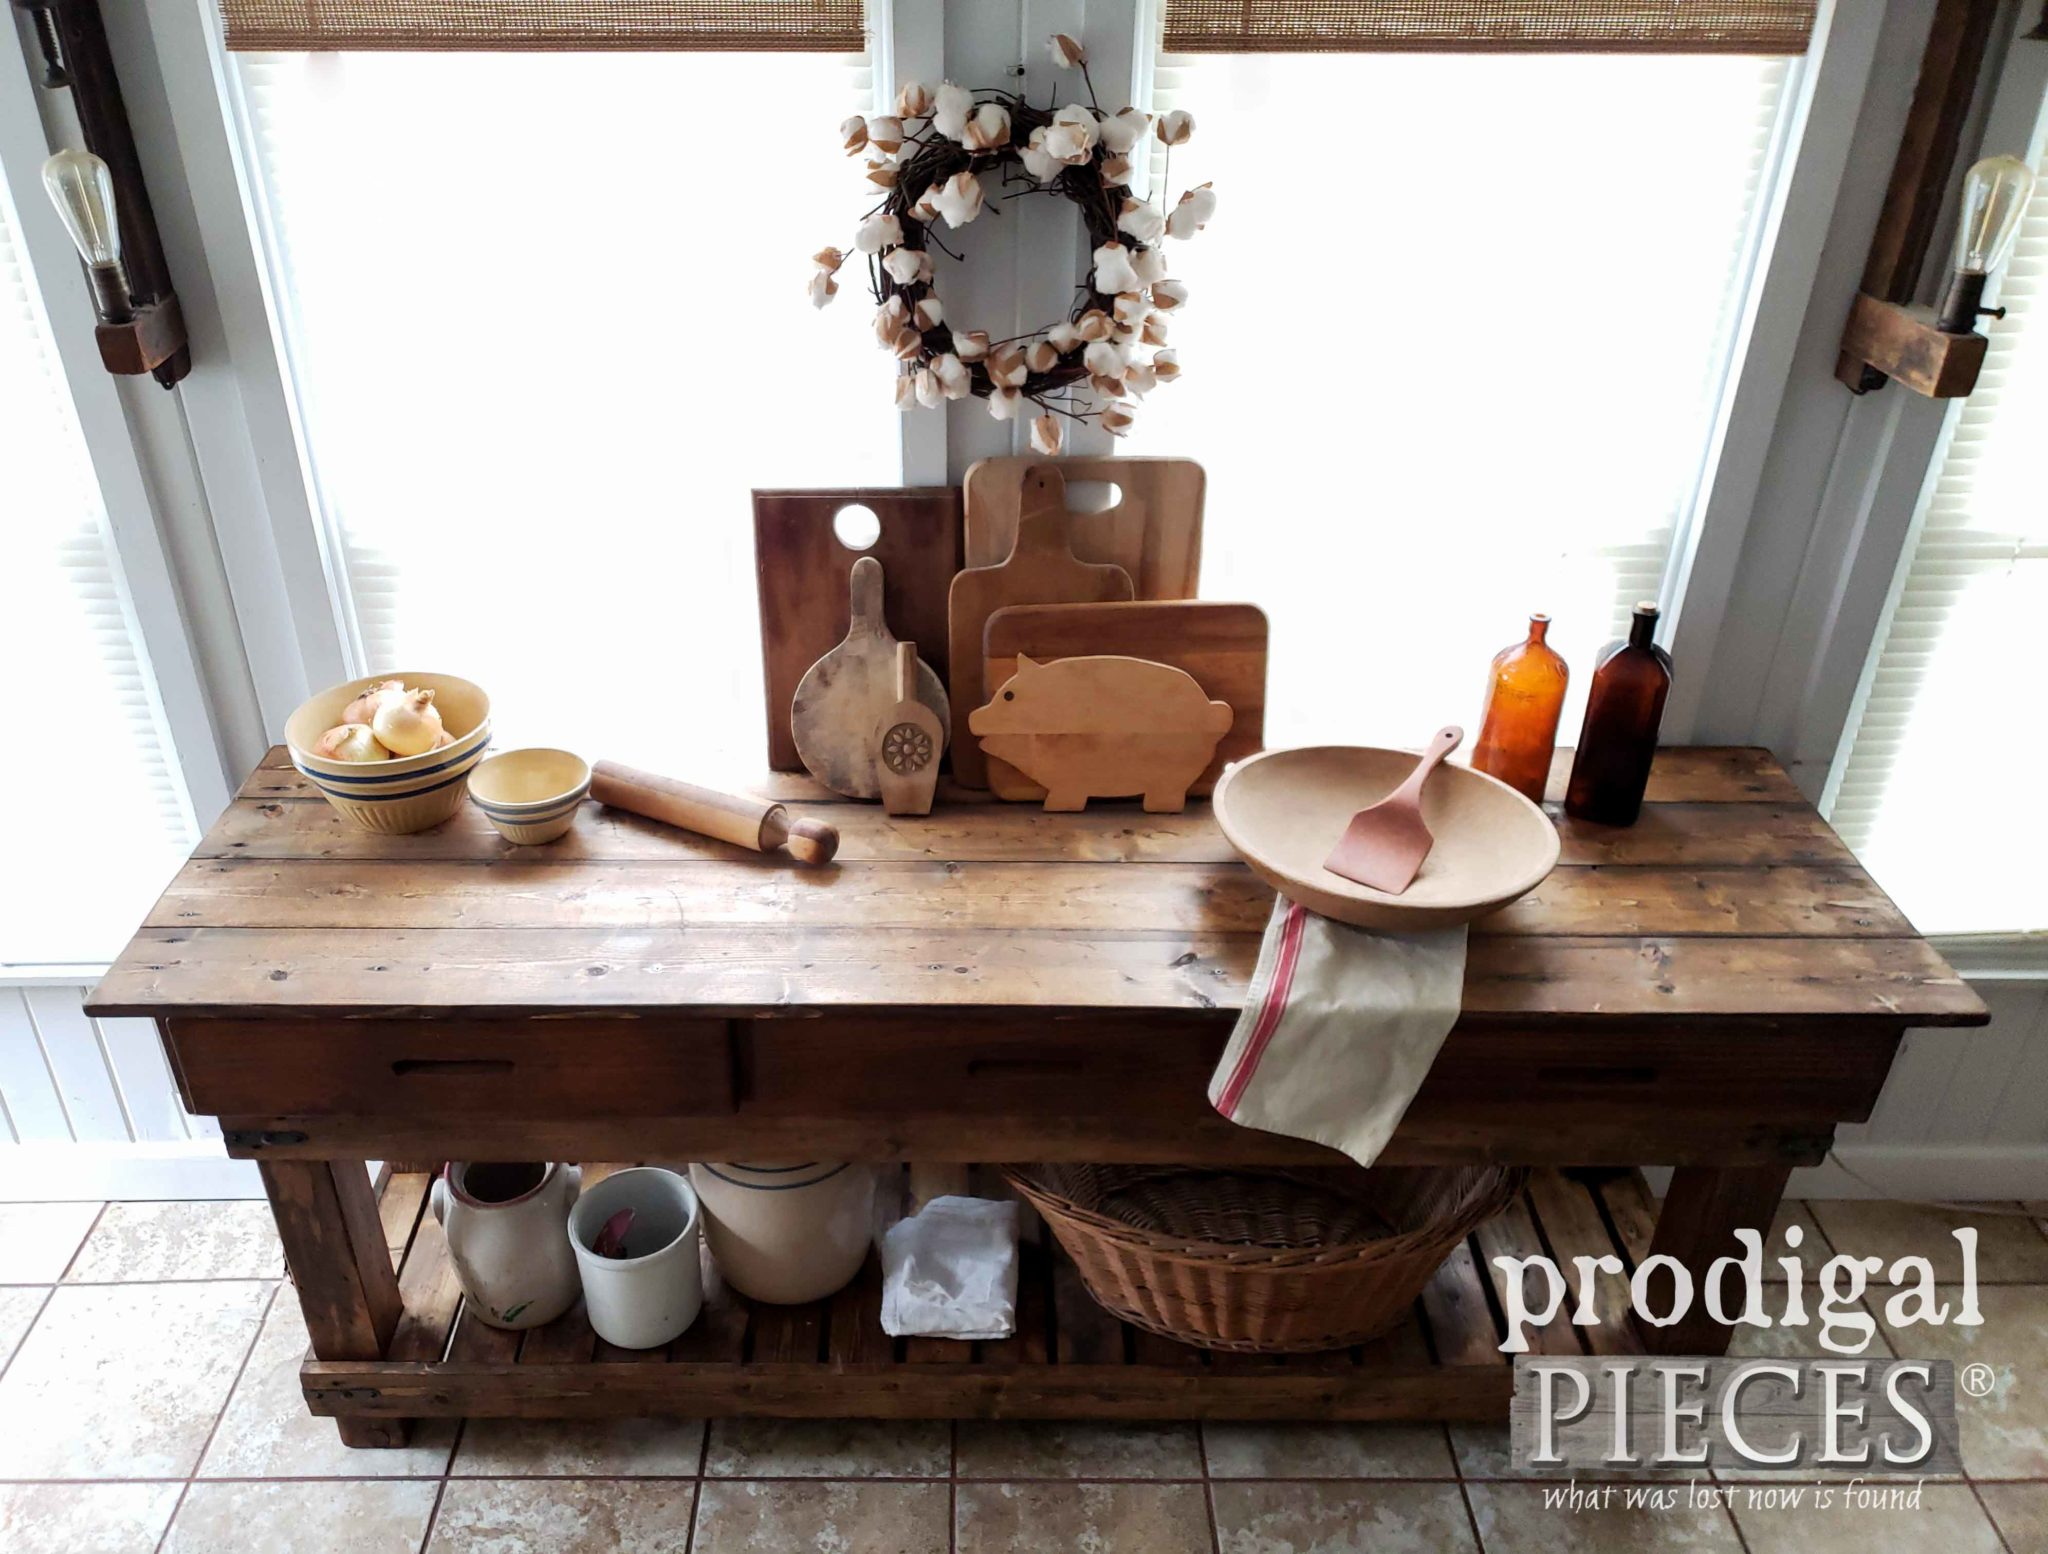 Planked Farmhouse Kitchen Workbench or Console for Entry by Larissa of Prodigal Pieces | prodigalpieces.com